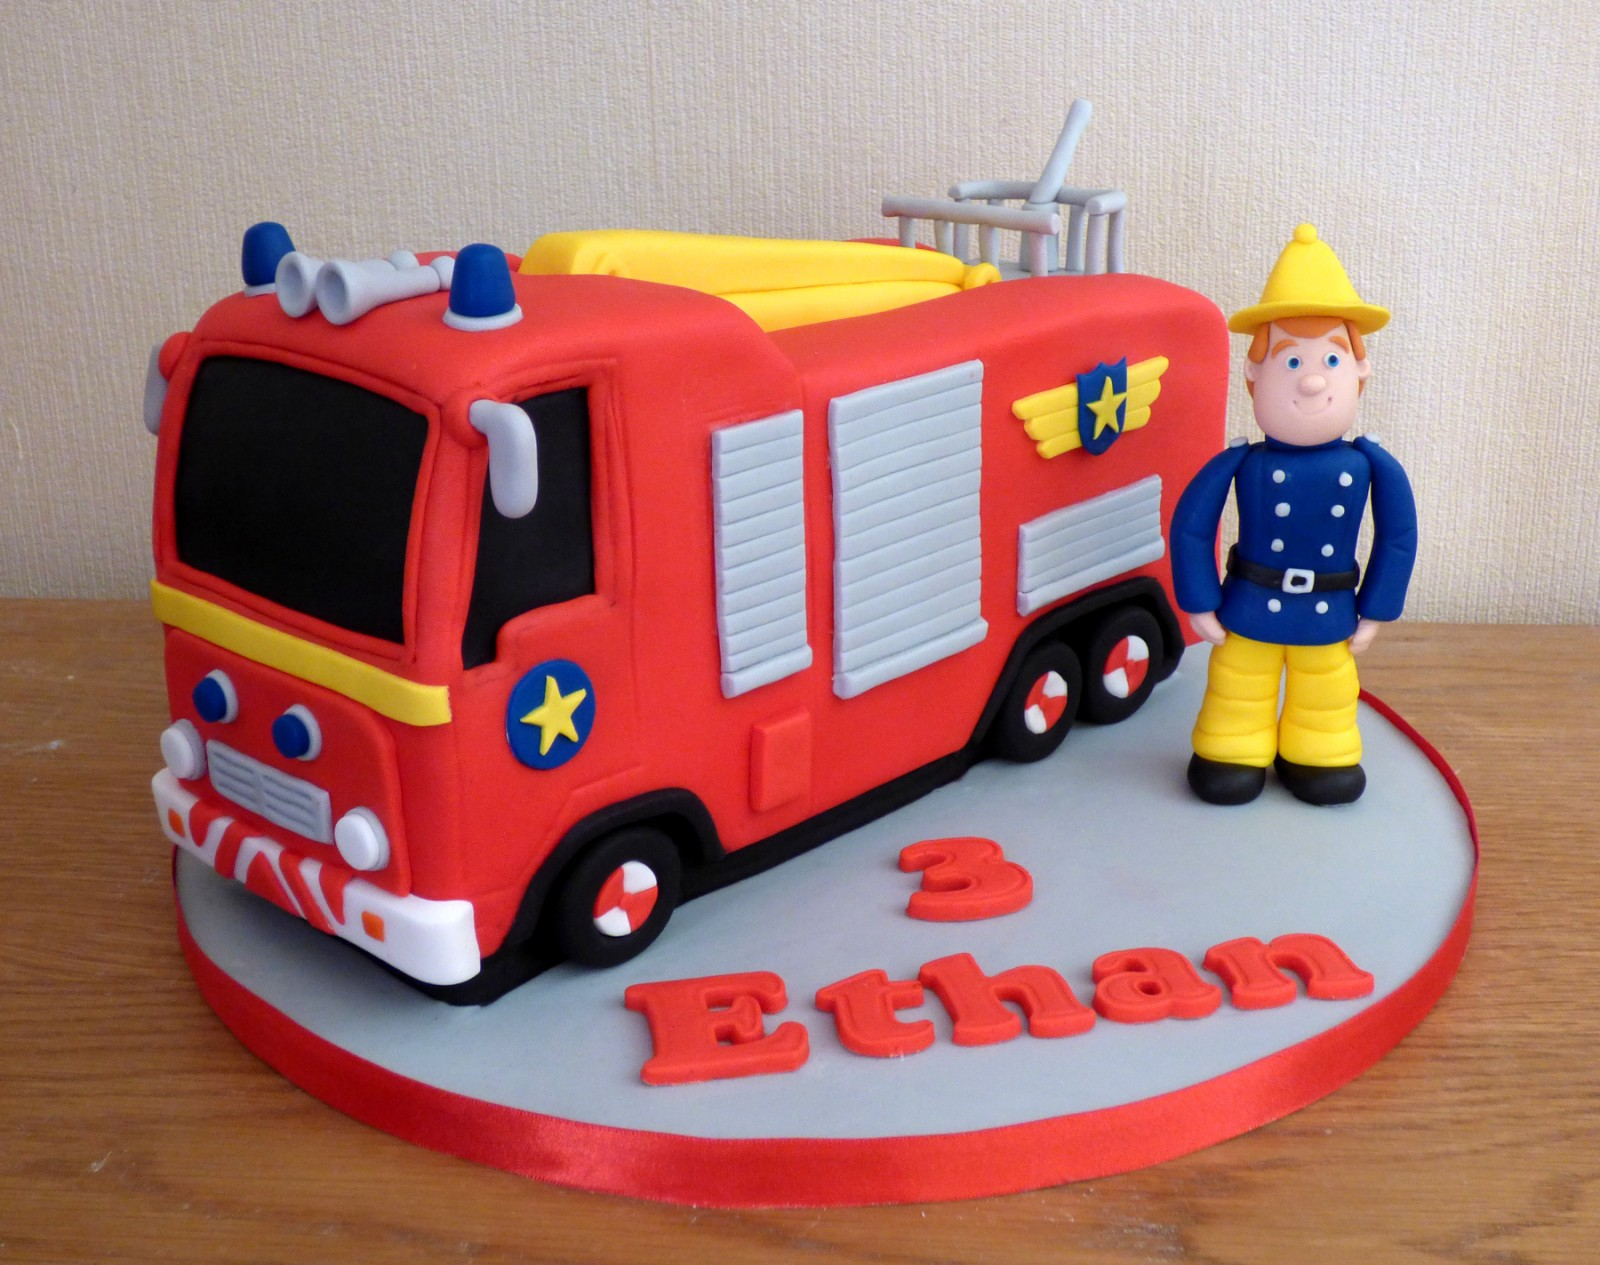 Fabulous Fireman Sam And Fire Engine Birthday Cake Susies Cakes Funny Birthday Cards Online Alyptdamsfinfo